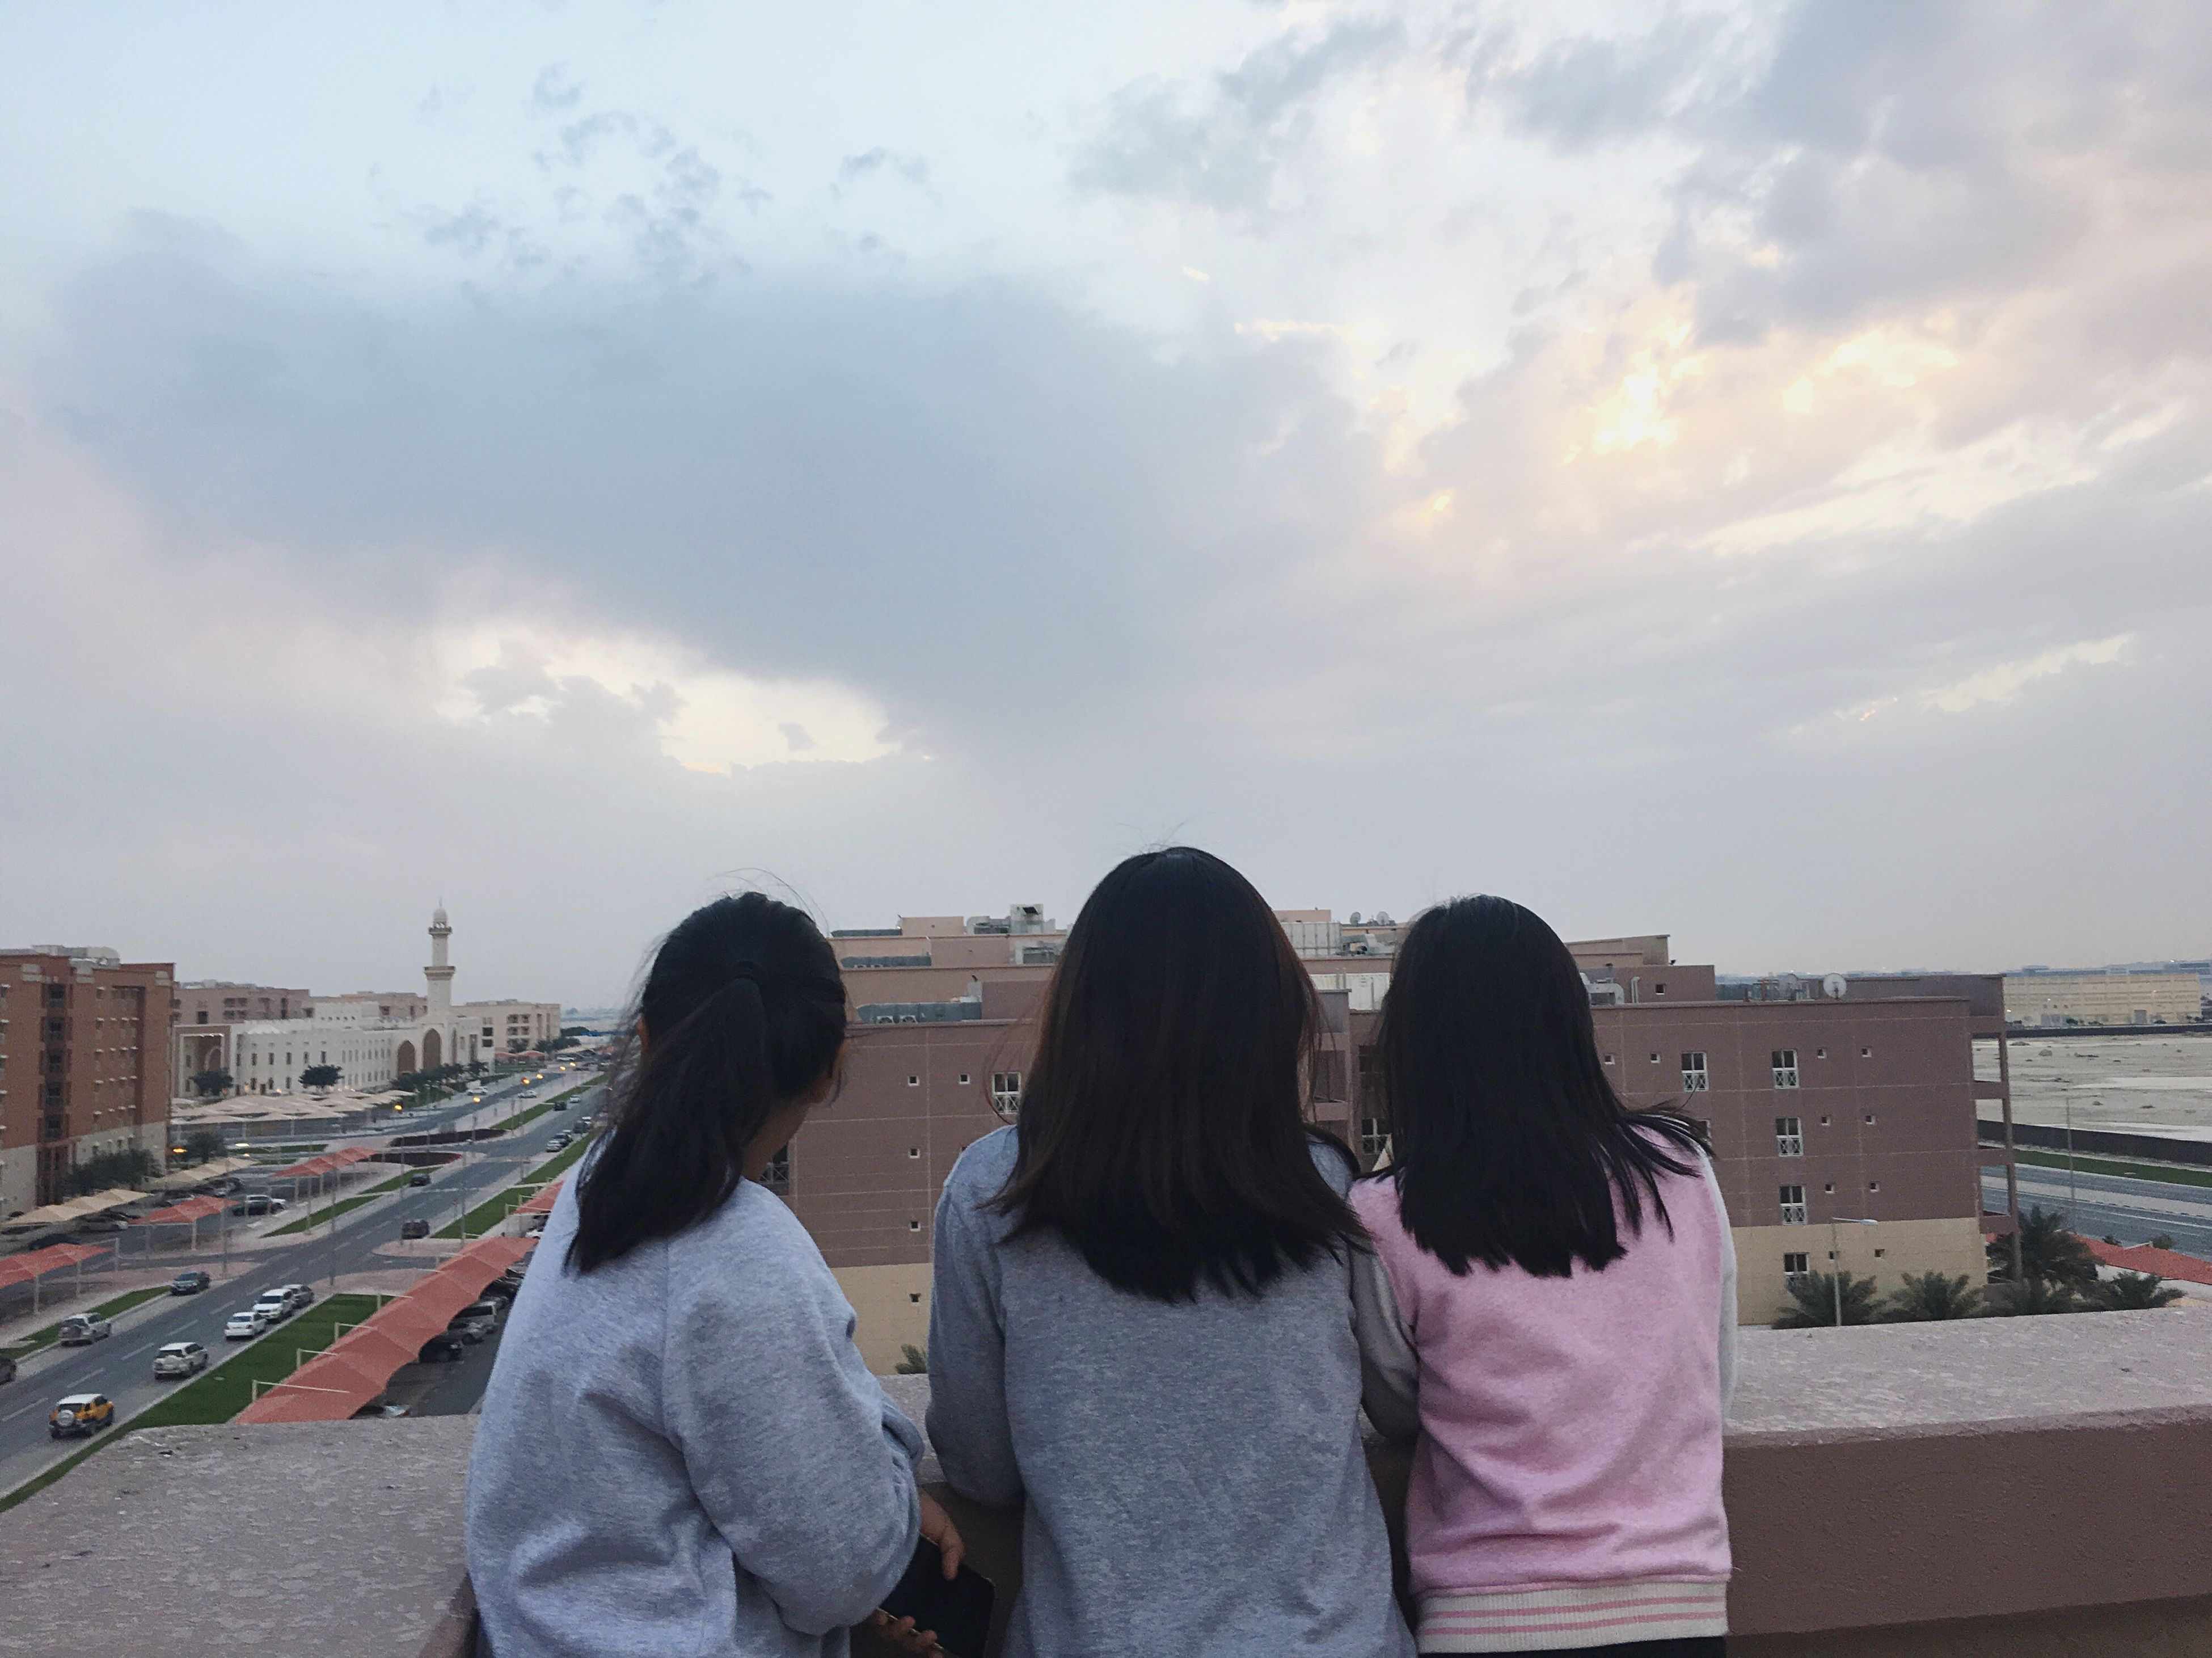 sky, togetherness, friendship, leisure activity, women, cloud - sky, real people, standing, built structure, bonding, people, building exterior, city, young women, outdoors, vacations, cityscape, adult, adults only, architecture, day, young adult